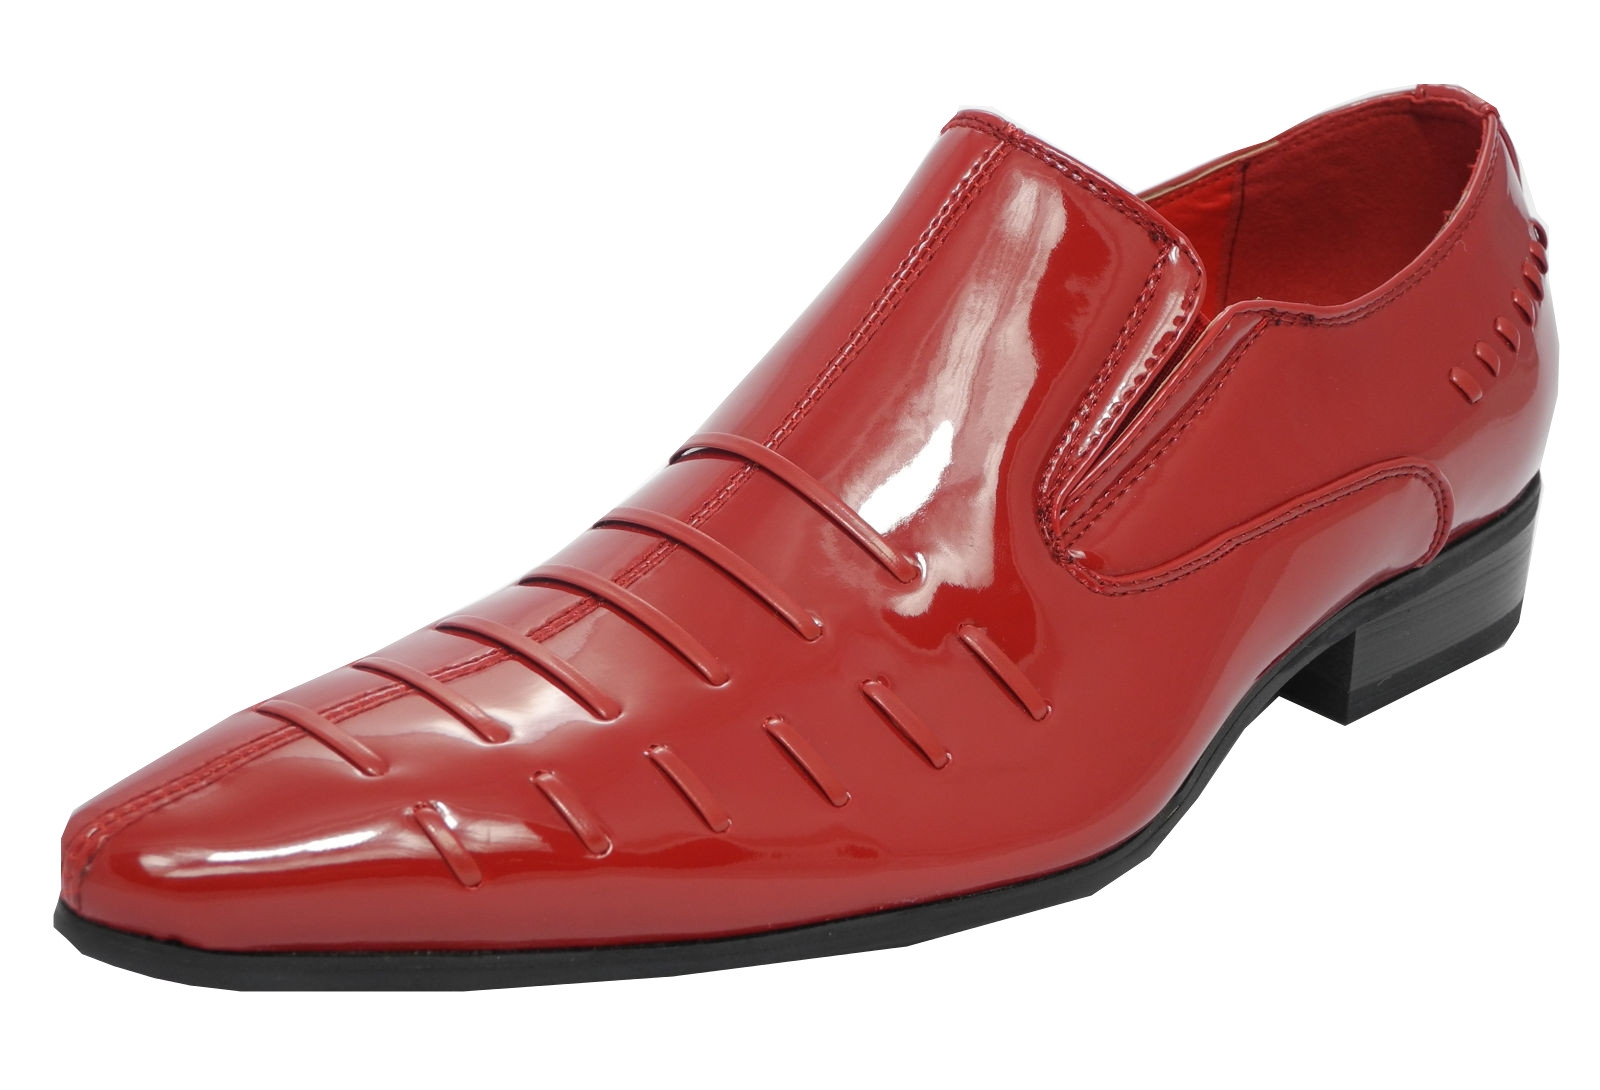 Mens Patent Leather Look Pointed Toe Slip On Dress Shoes RED Size 10 Enlarged Preview